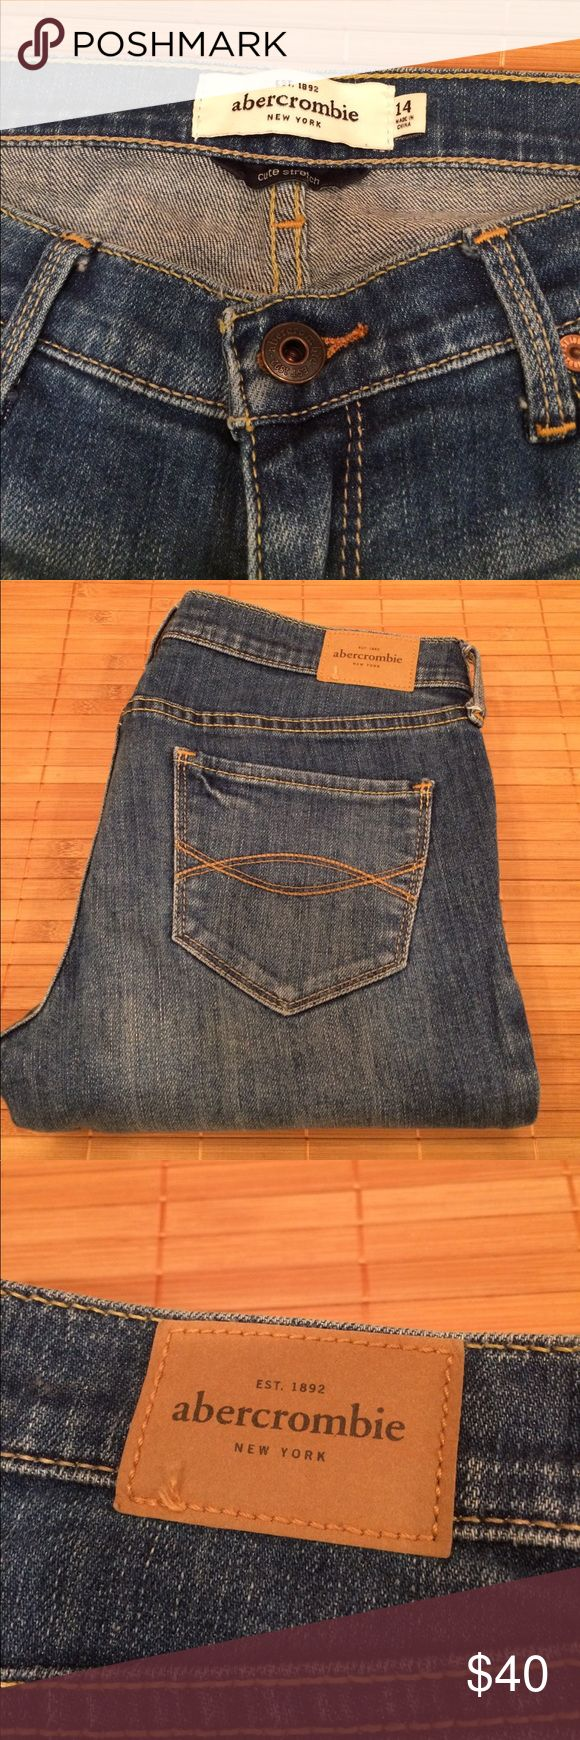 "abercrombie girls sz 14 ""Maddy"" jeans - NWOT Super sweet, super soft,  skinny abercrombie girls size 14 Maddy jeans.  I'm a size 00 and these fit me great. I never wore them and tags are gone but perfect shape.  Light whiskering details. Low rise. Tag reads 98% cotton and 2% elastane. abercrombie kids Jeans Skinny"